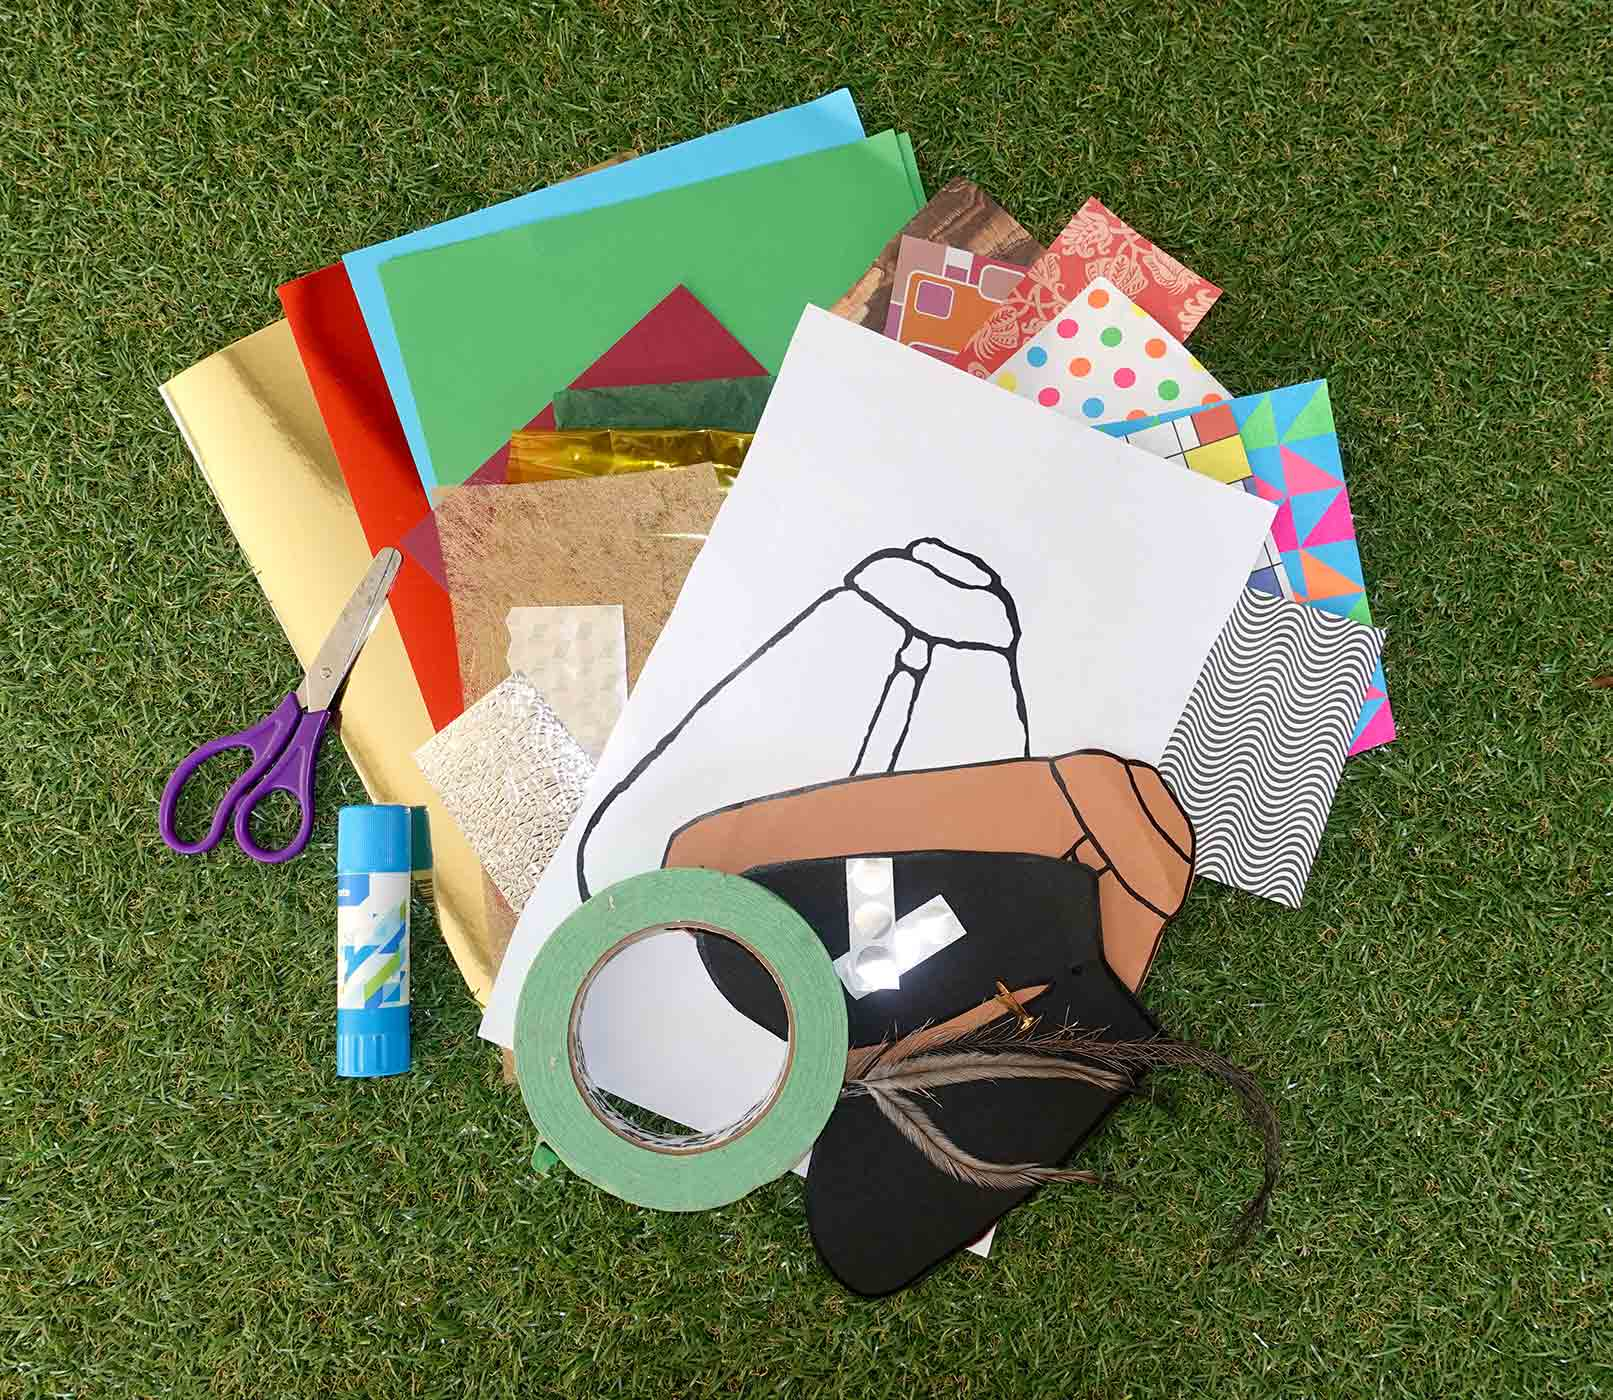 Colour photo of various materials including a paper moth template, scissors, glue, tape, feathers and other materials.